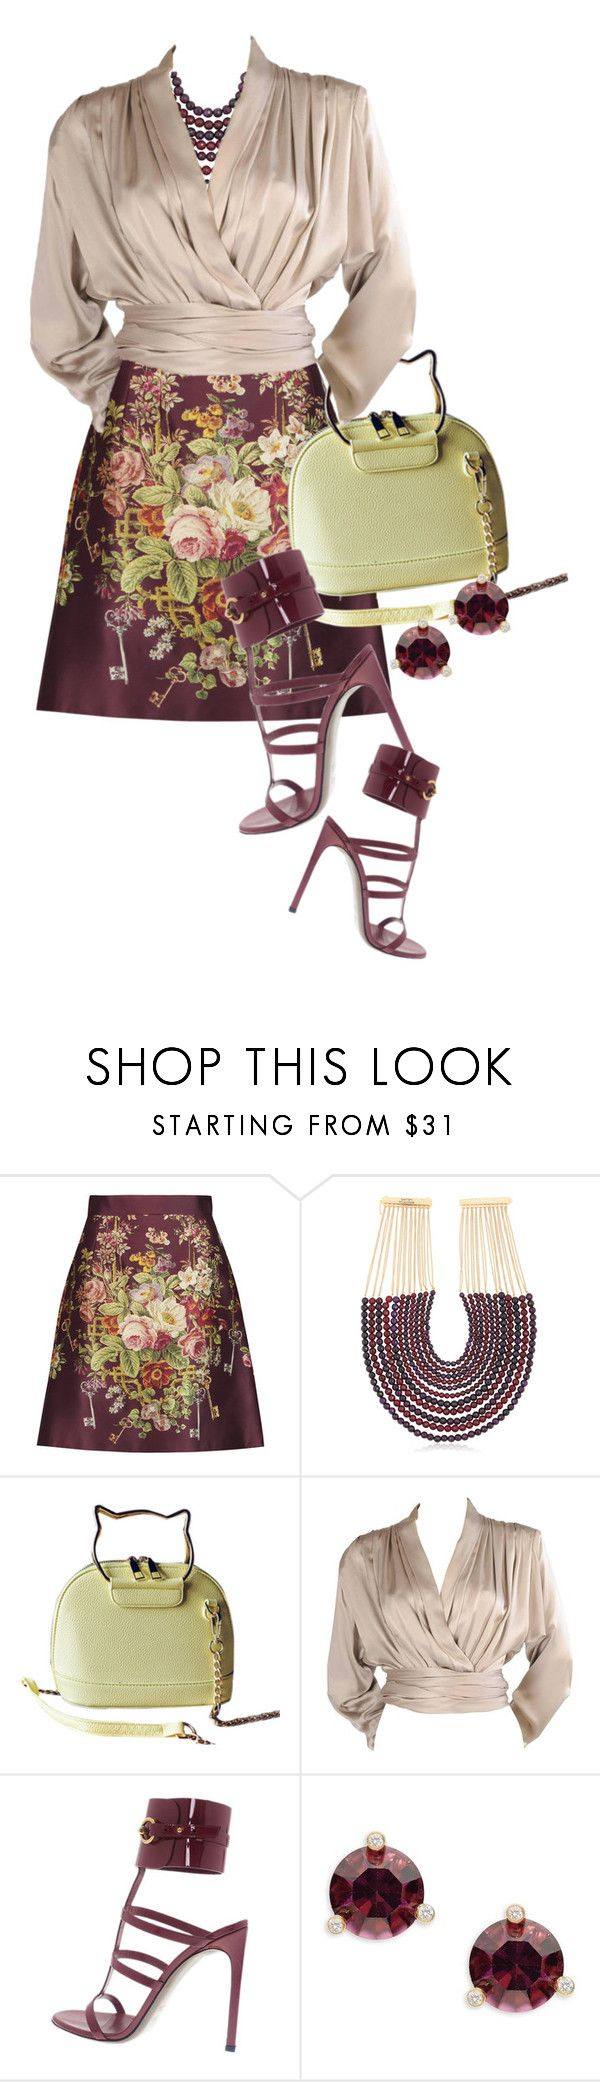 """""""Dolce & Gabbana Printed silk and wool-blend satin mini skirt"""" by queenrachietemplateaddict ❤ liked on Polyvore featuring Dolce&Gabbana, Rosantica, Yves Saint Laurent, Gucci and Kate Spade"""